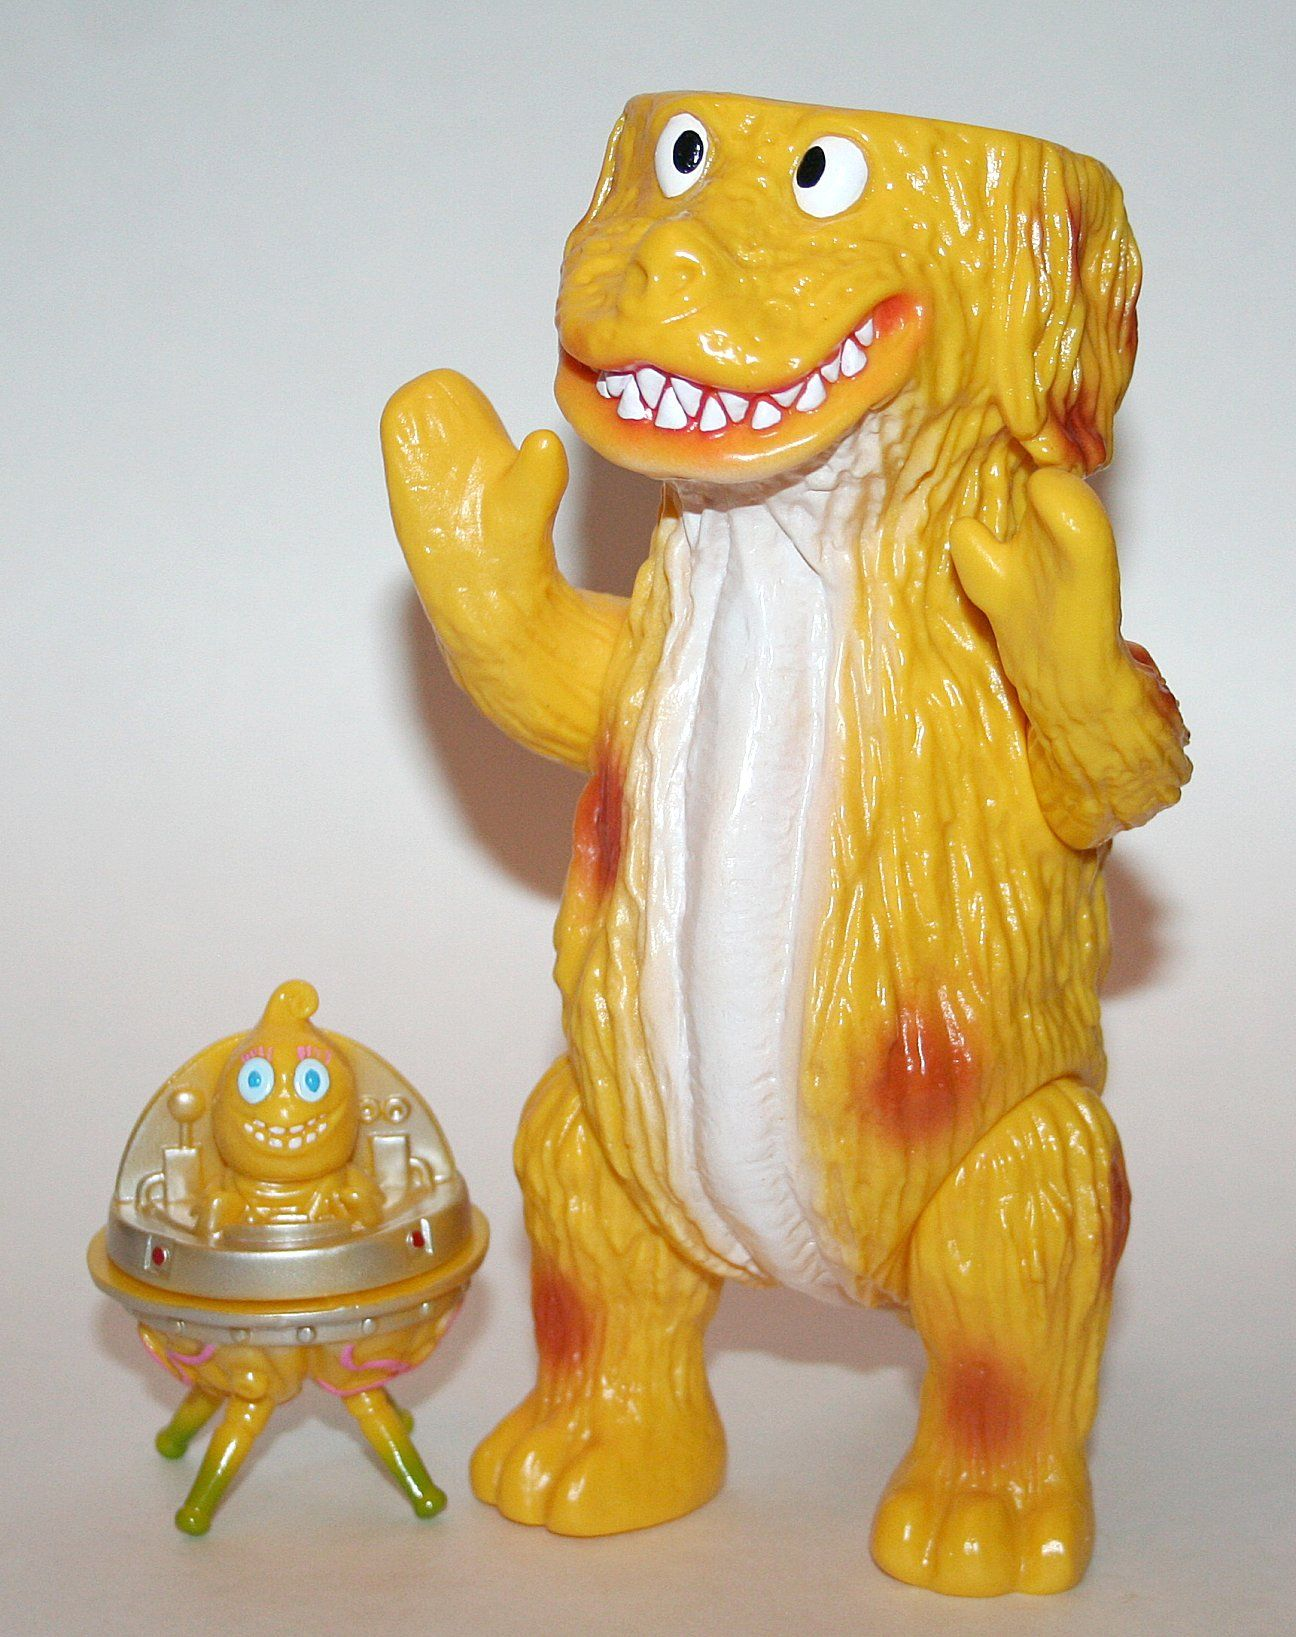 Agree, excellent monster toy with asian girl